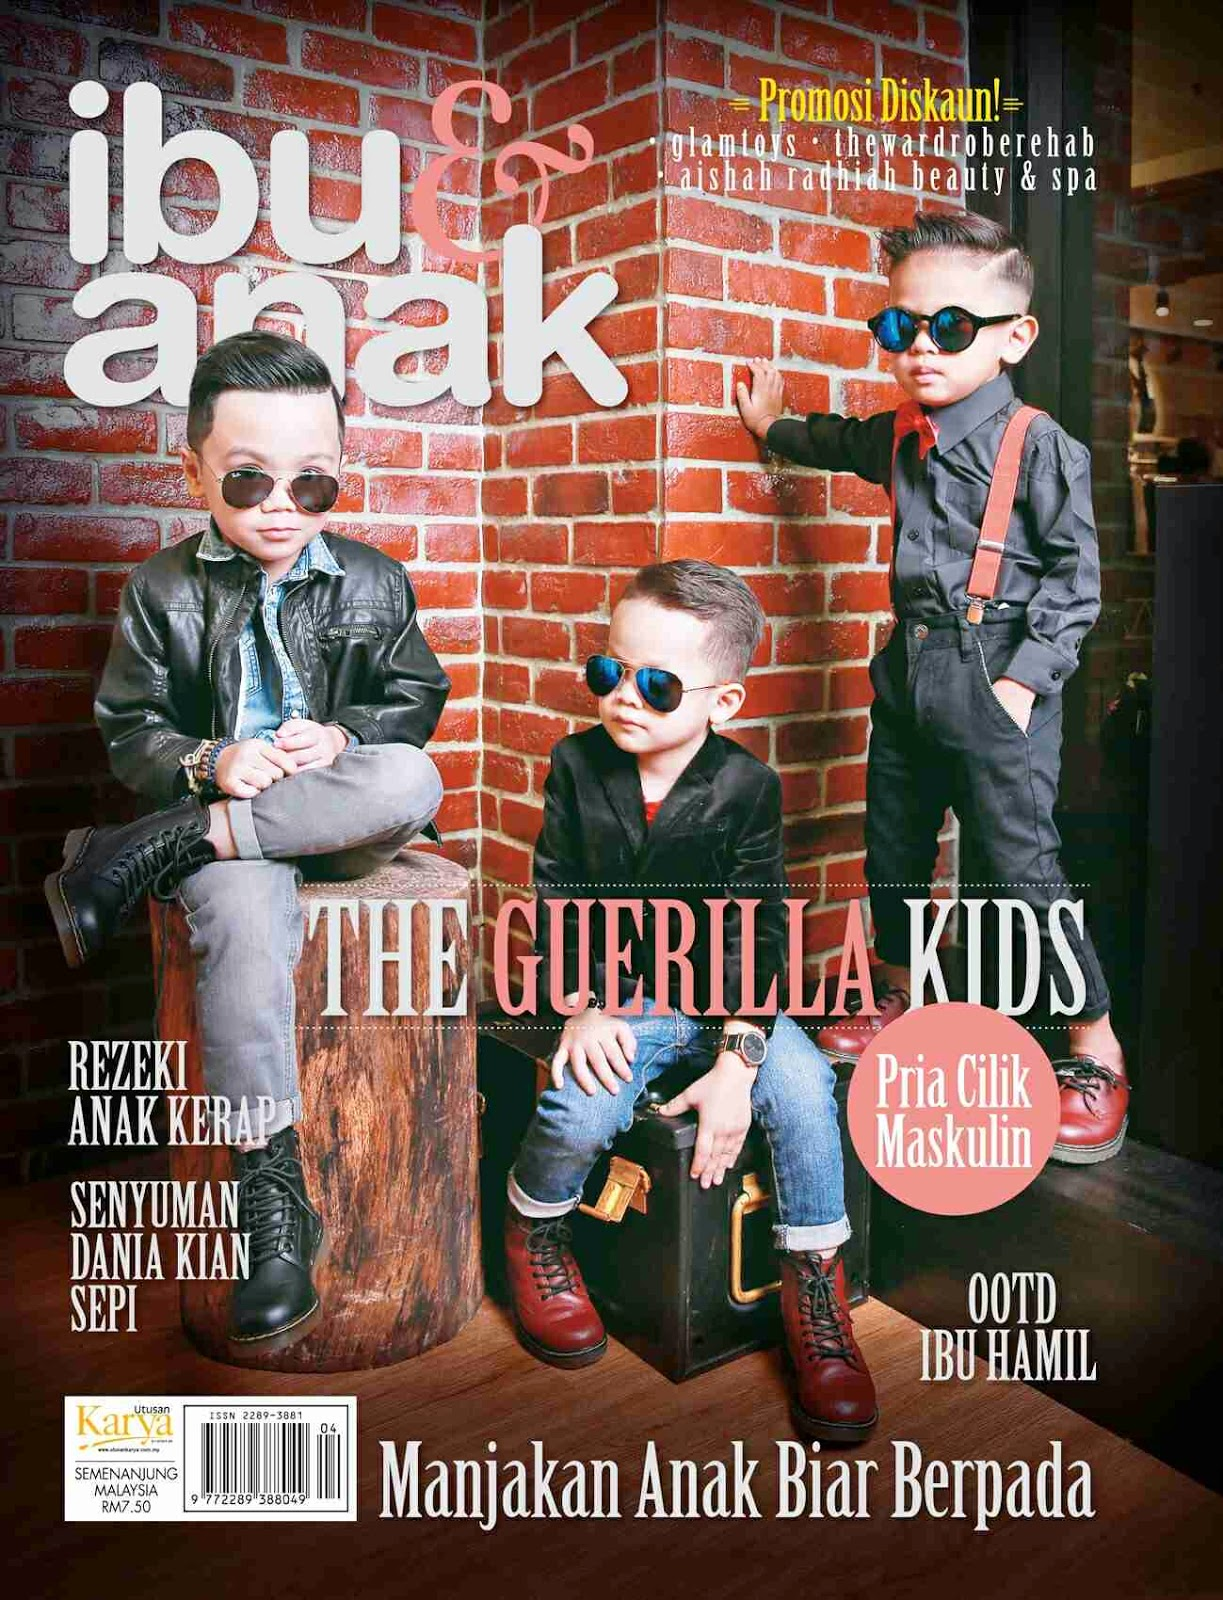 Ibu dan Anak for the opportunity! Grab the April 2015 Majalah Ibu dan